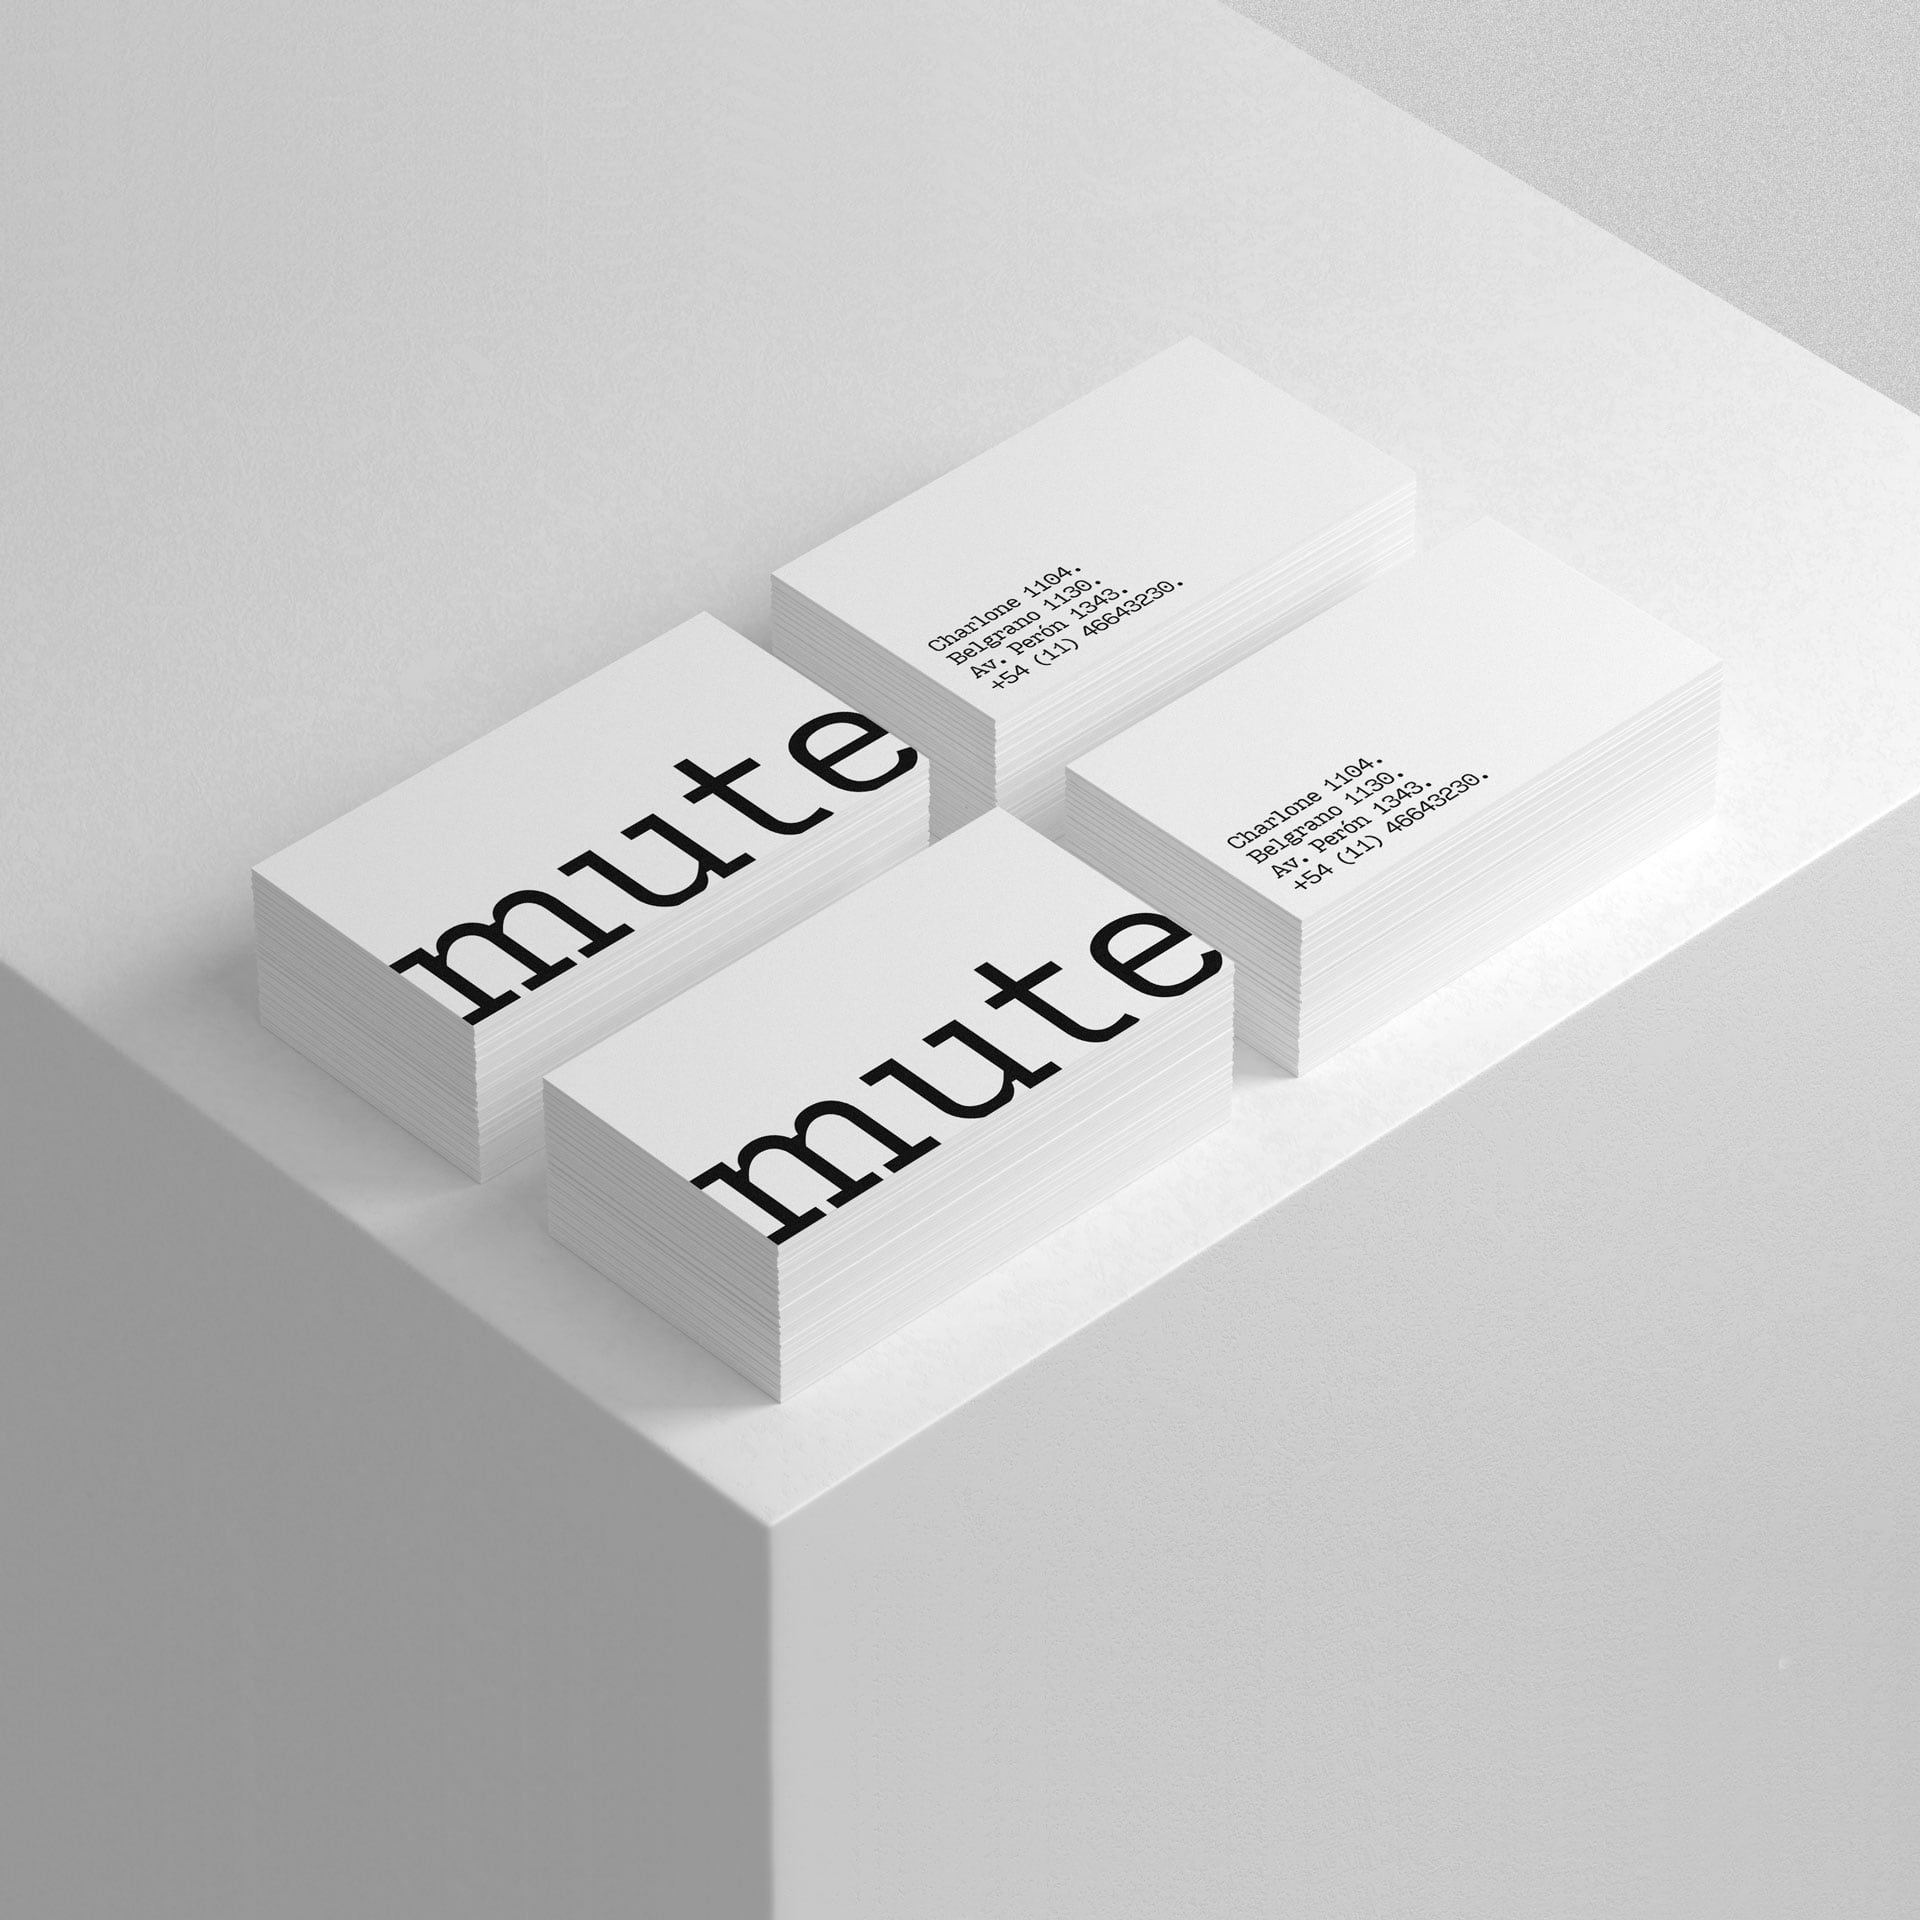 Mute. Name. Design Agency.